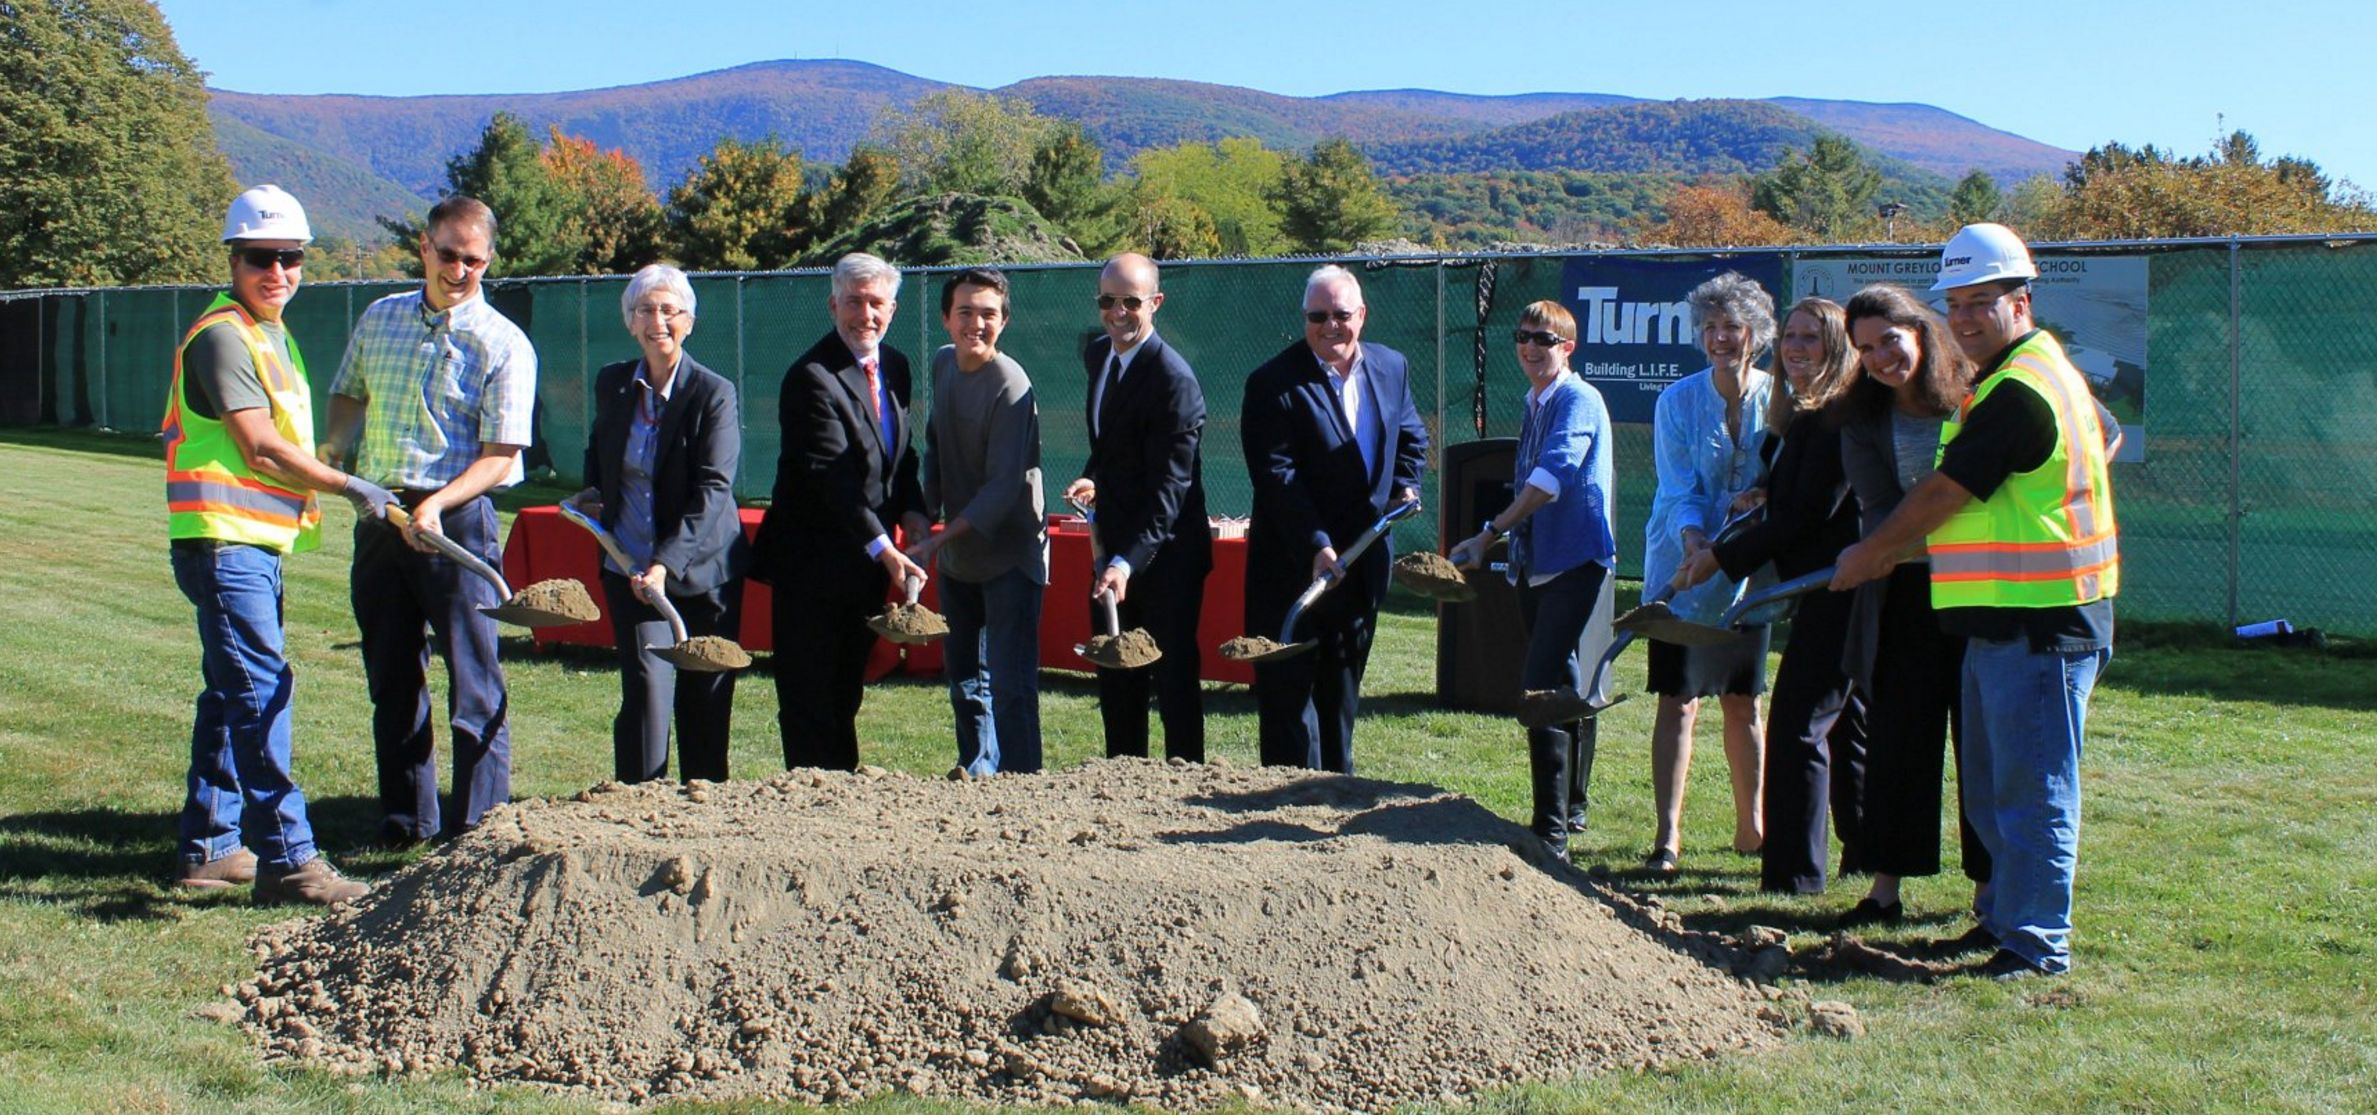 Executive Director Jack McCarthy joined local officials at the groundbreaking for the new Mount Greylock M/HS